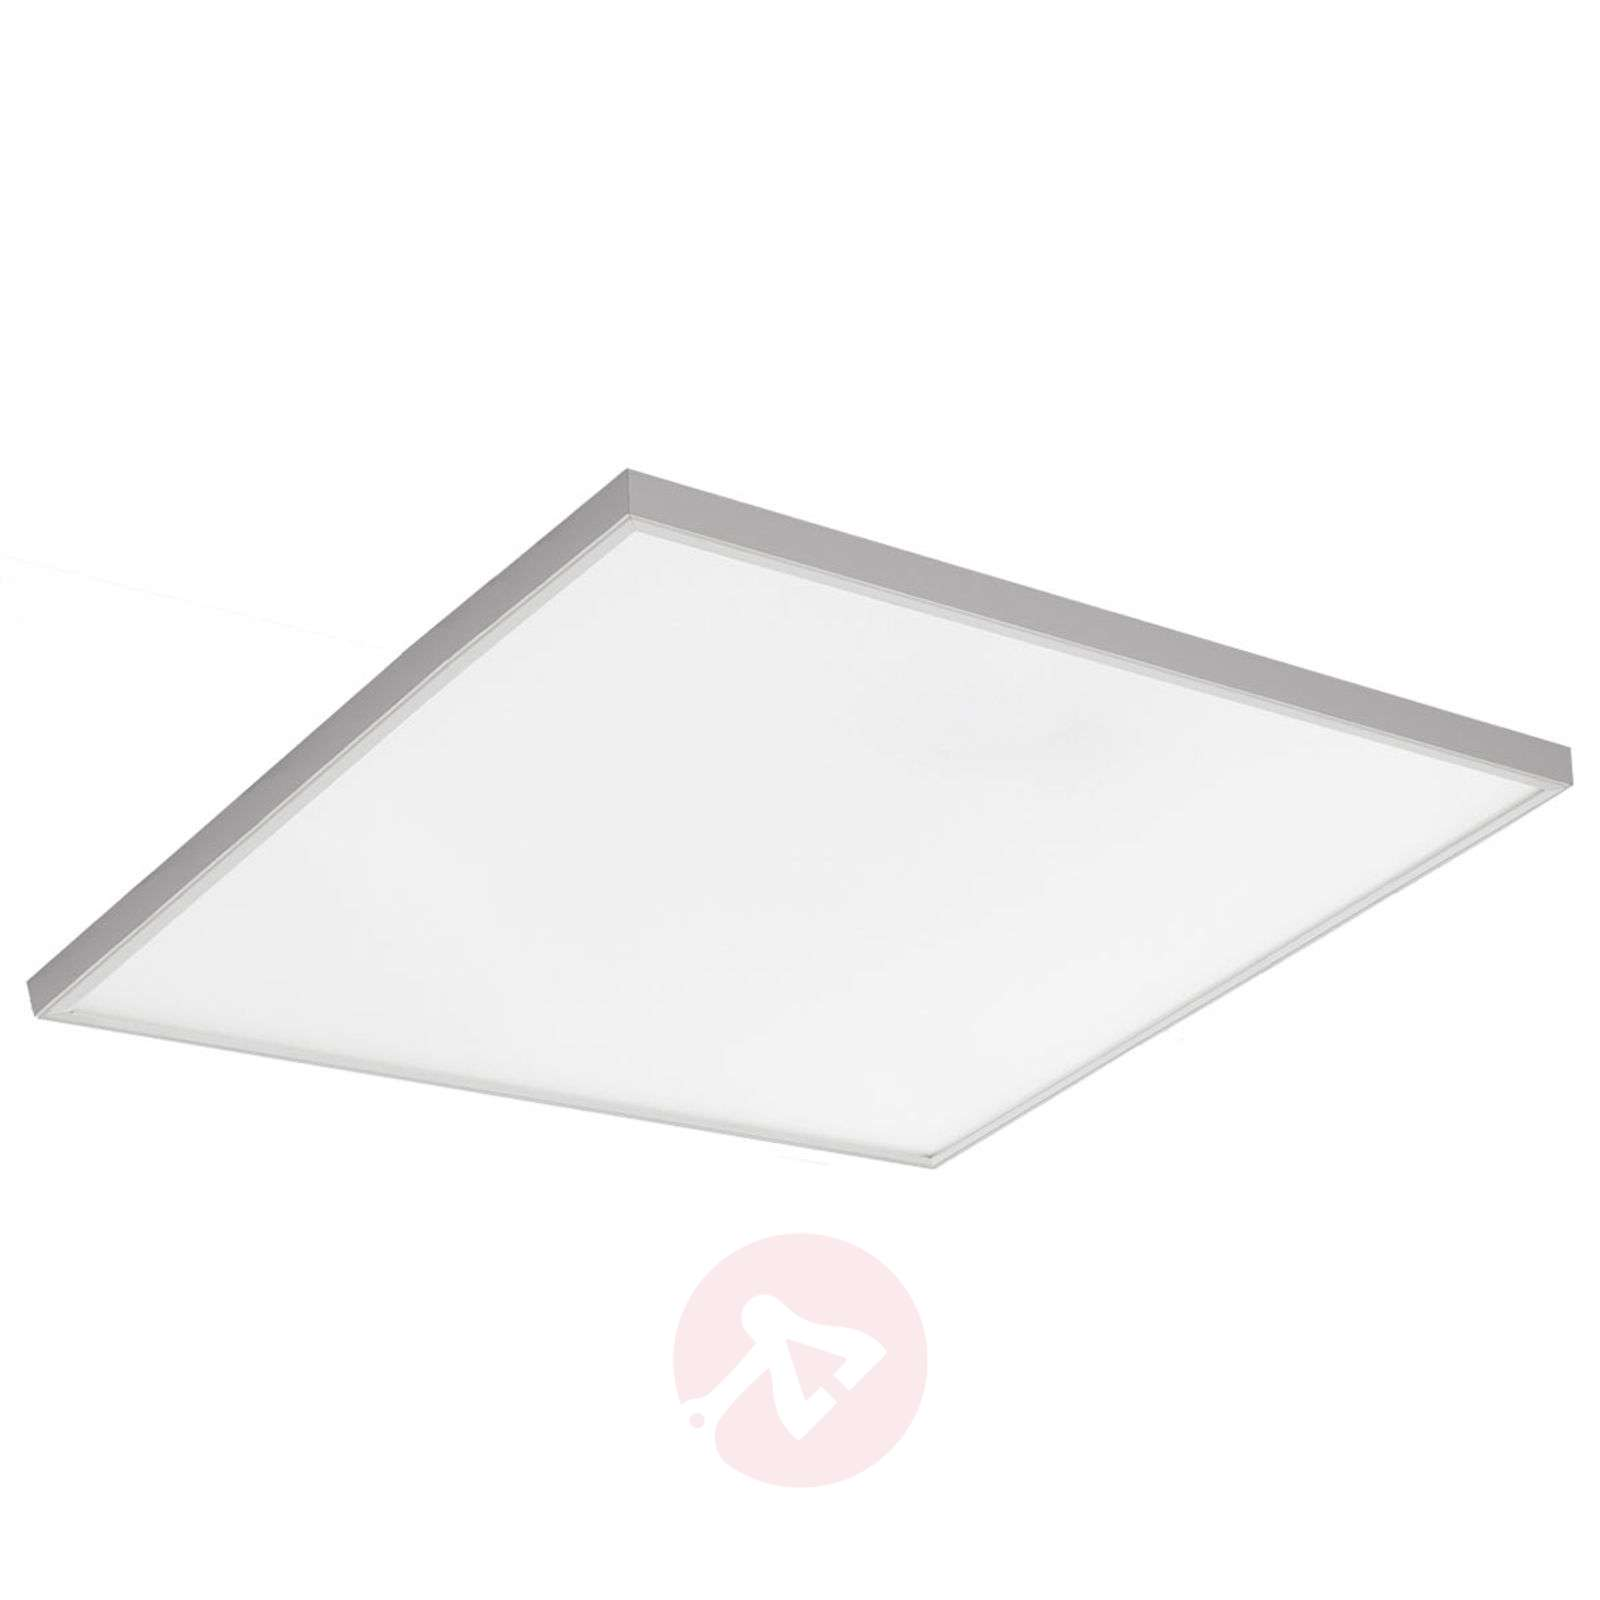 LED louvre light C95-R 62.5 x 62.5 cm HF 4,000 K-6040227-01